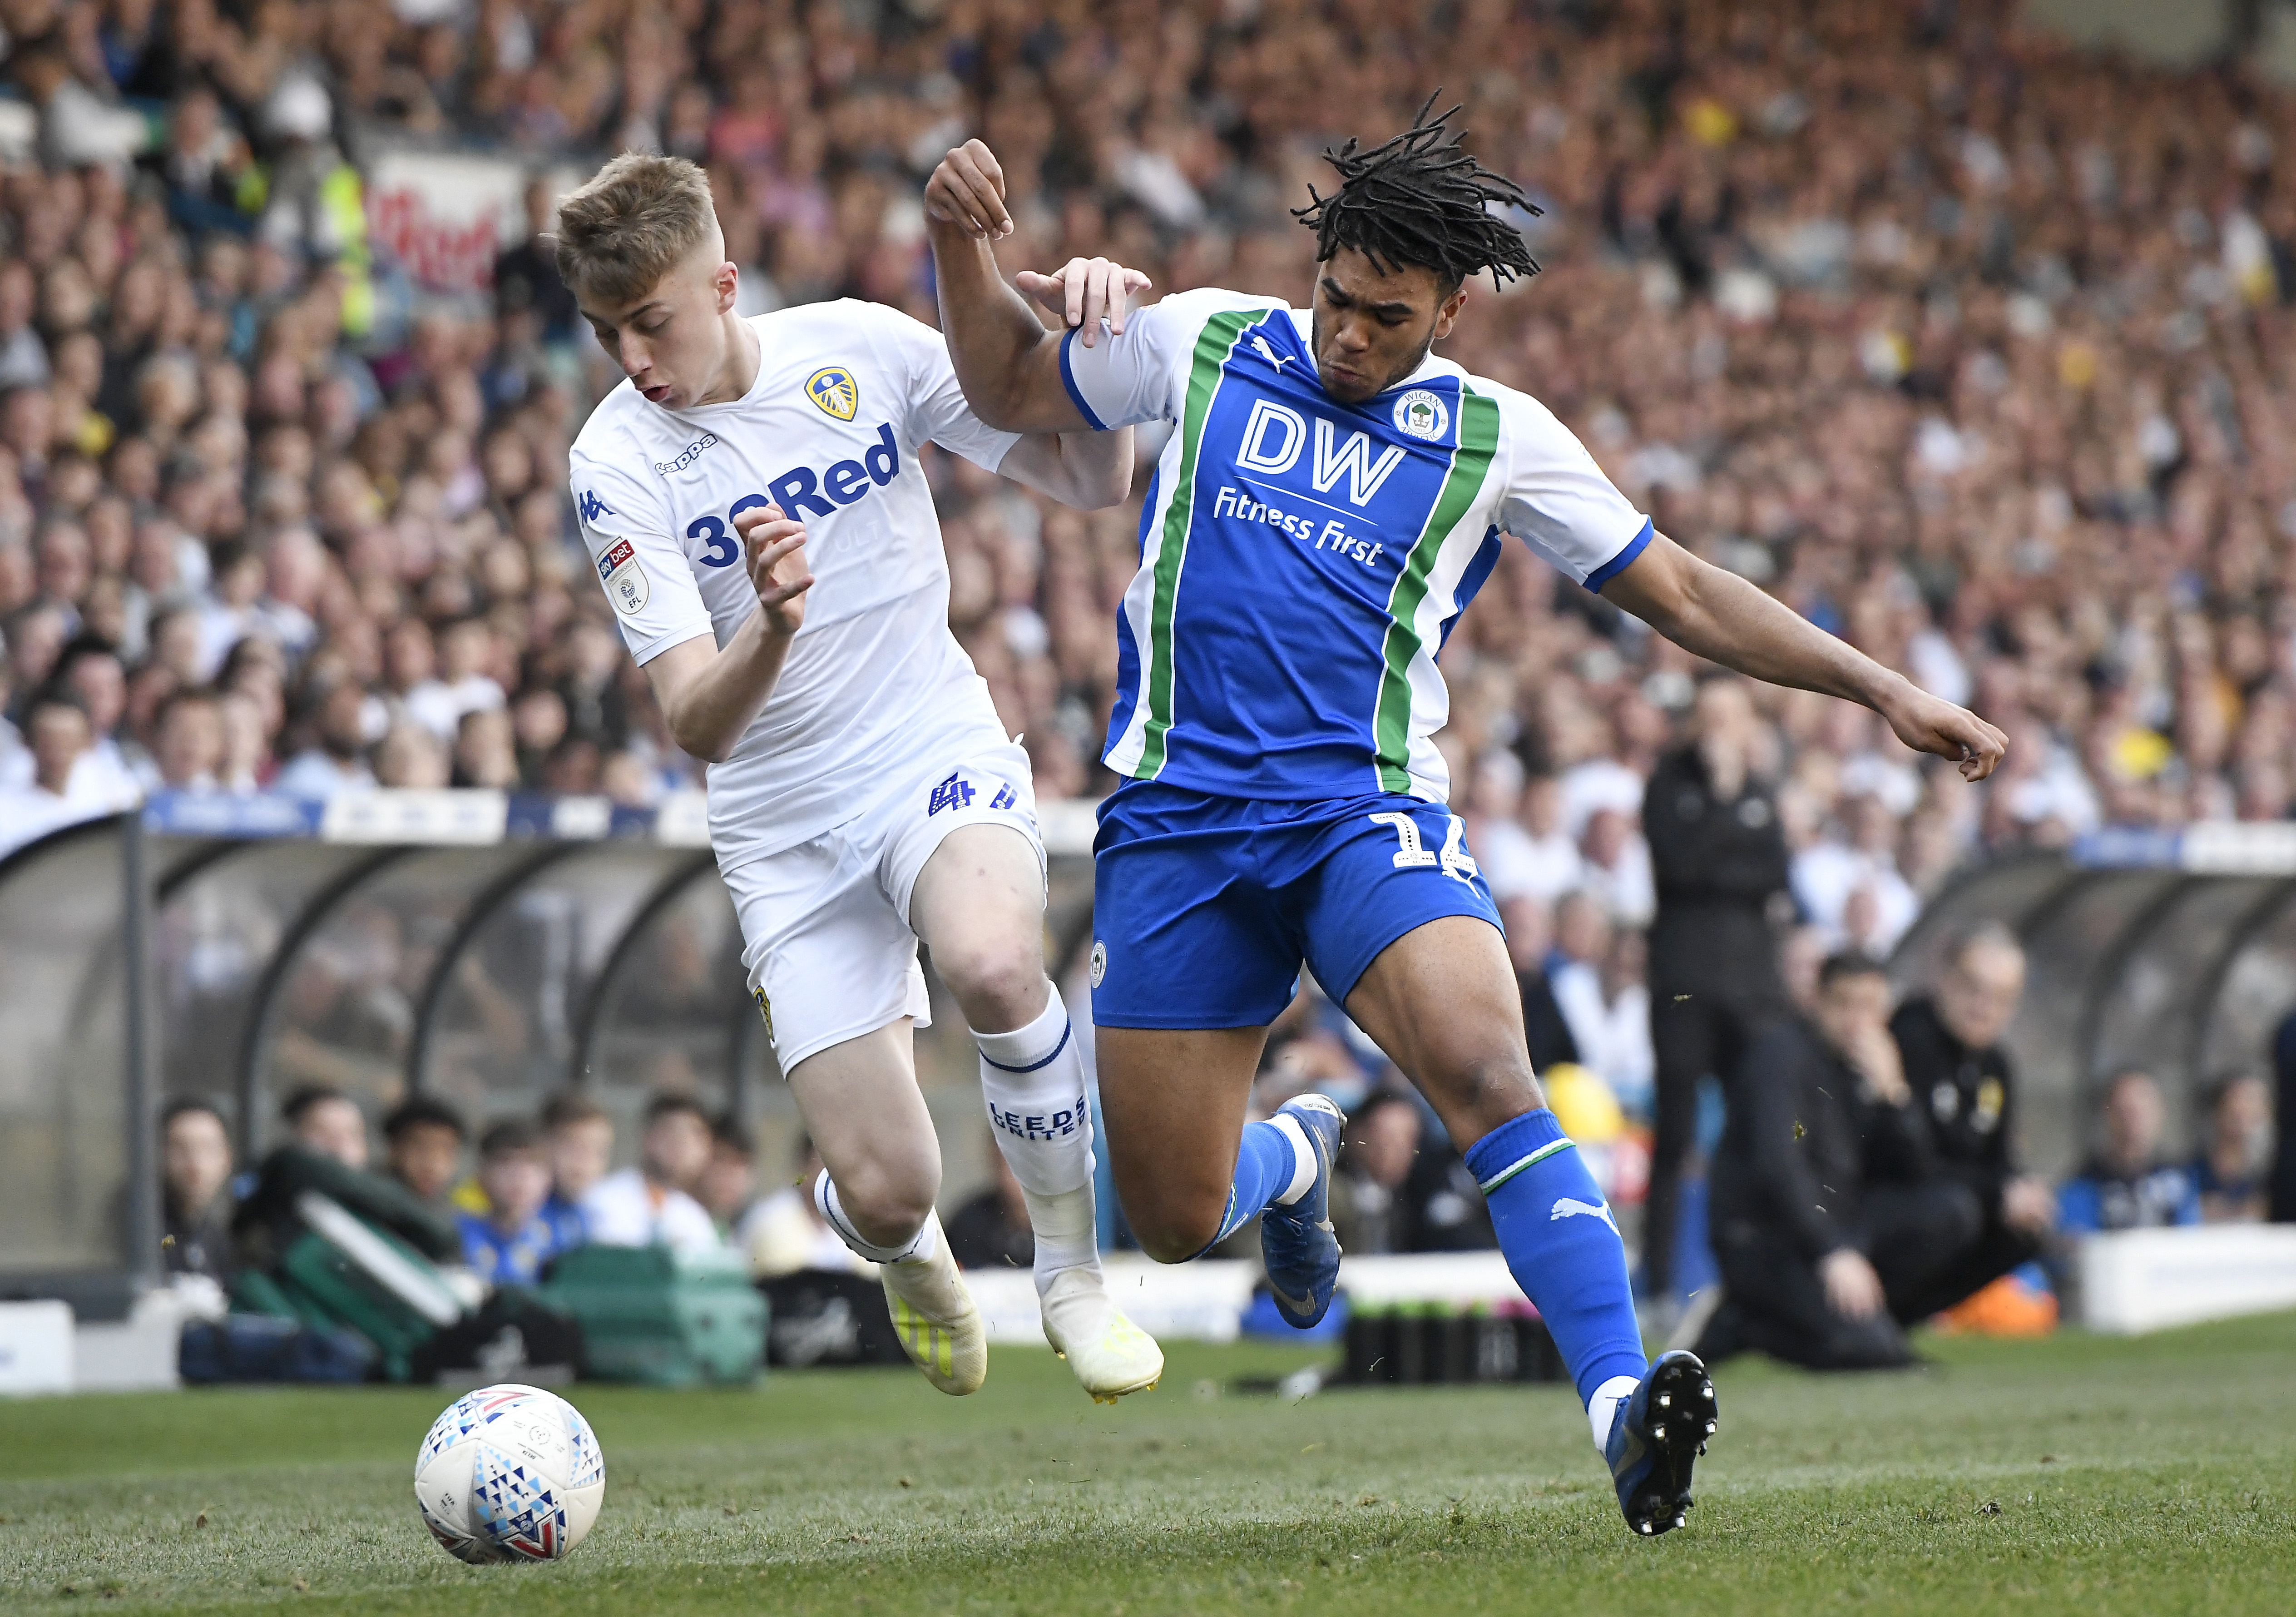 Match Recap: Leeds United blow chance to get three points as they lose 1-2 to 10 man Wigan